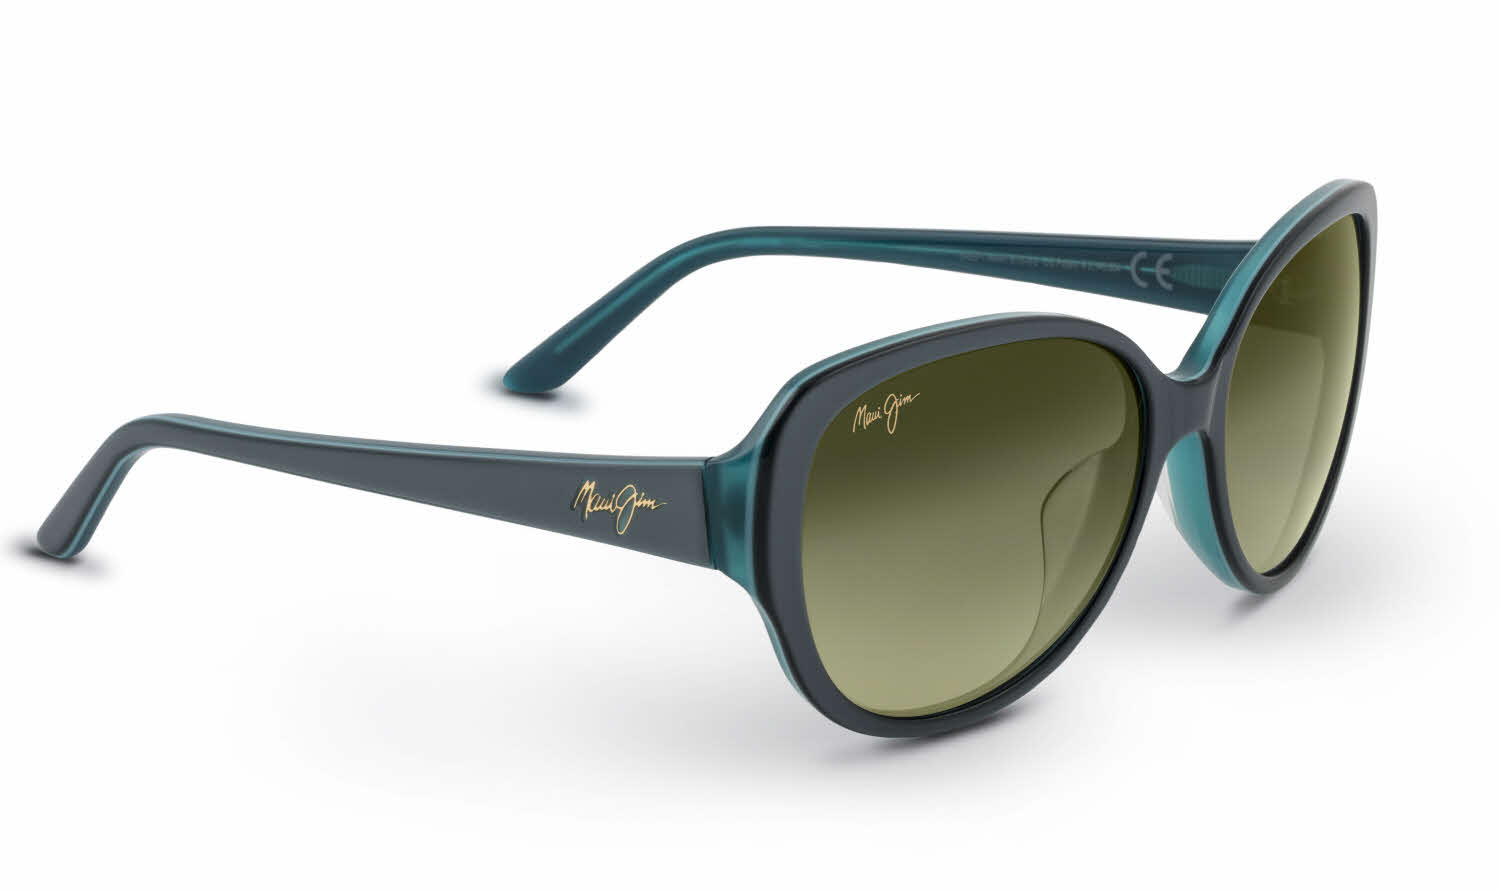 Maui Jim Swept Away-733 Prescription Sunglasses